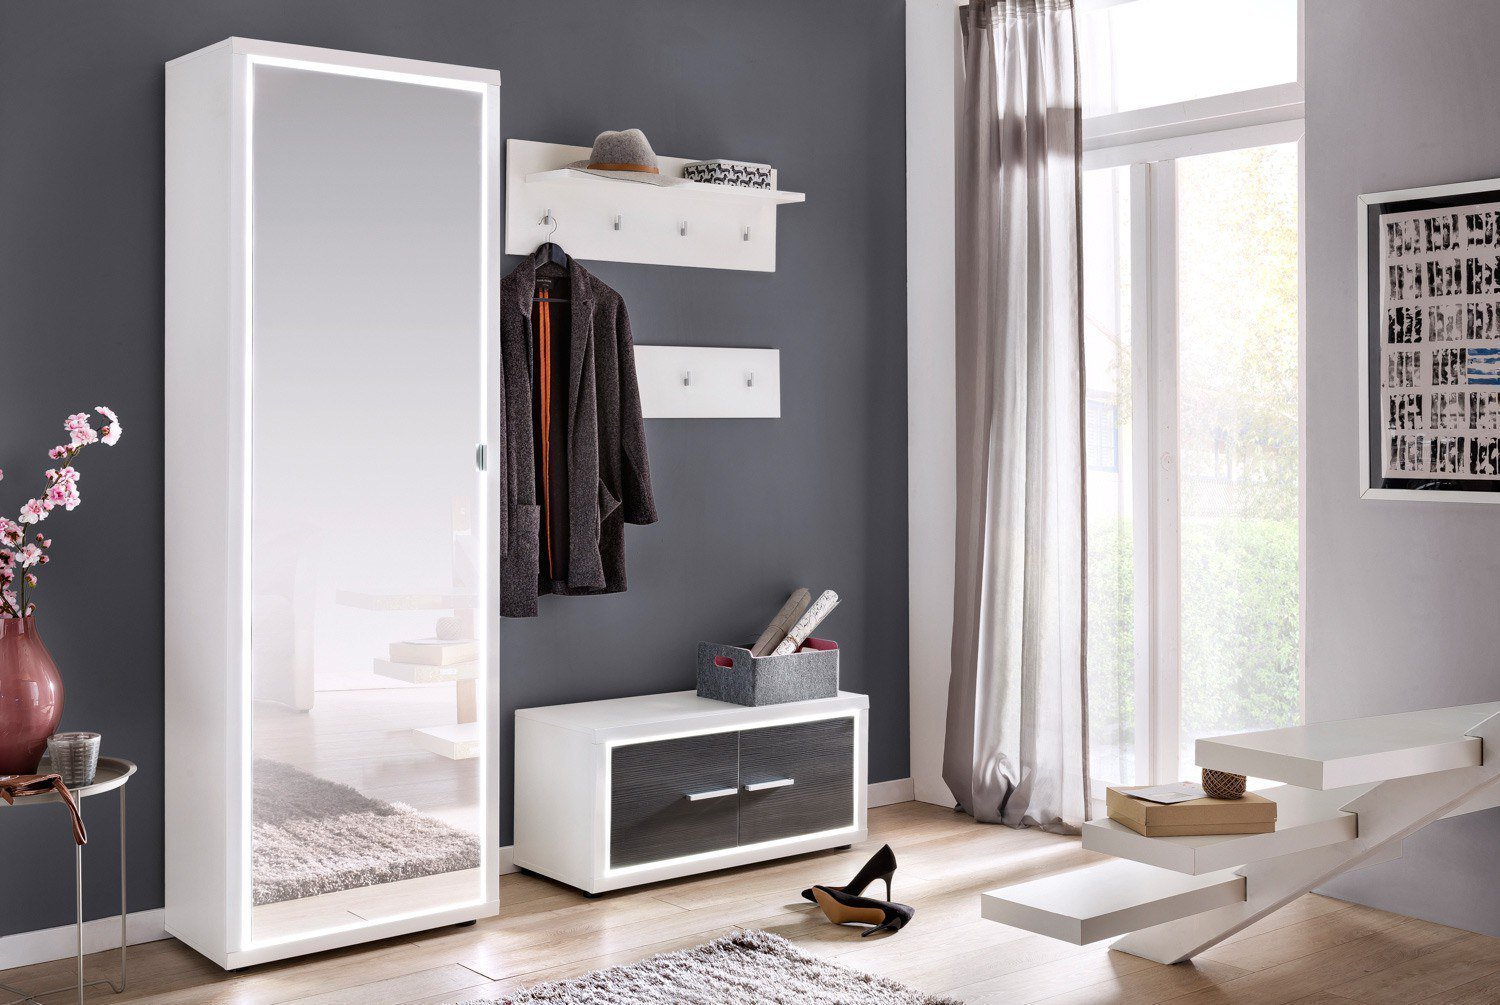 forestdream garderobe light inkl beleuchtung m bel letz ihr online shop. Black Bedroom Furniture Sets. Home Design Ideas